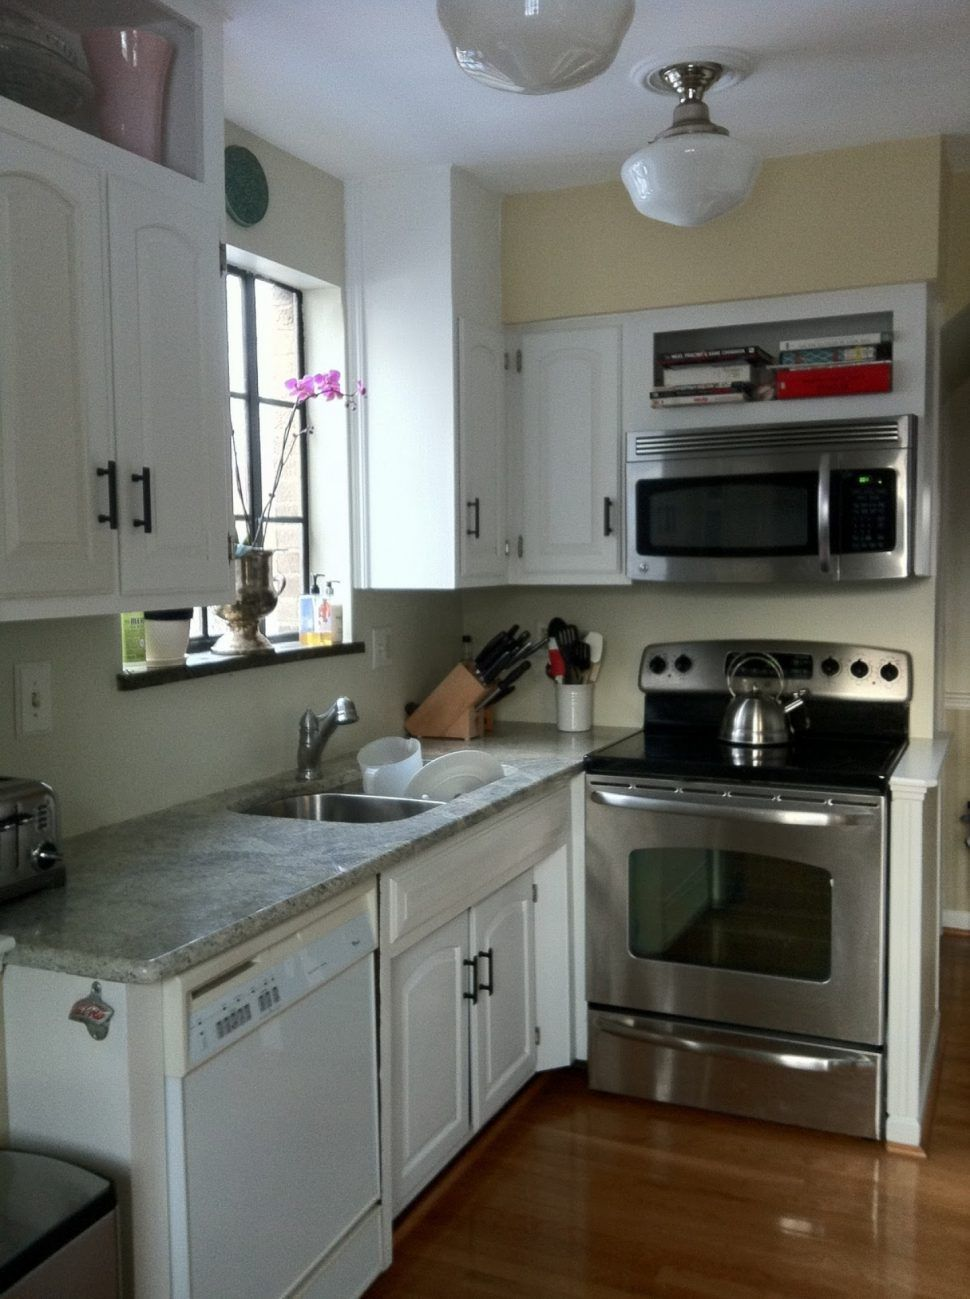 small kitchen ideas here are 55 small and efficient kitchen ideas and designs to give you on t kitchen ideas id=78910